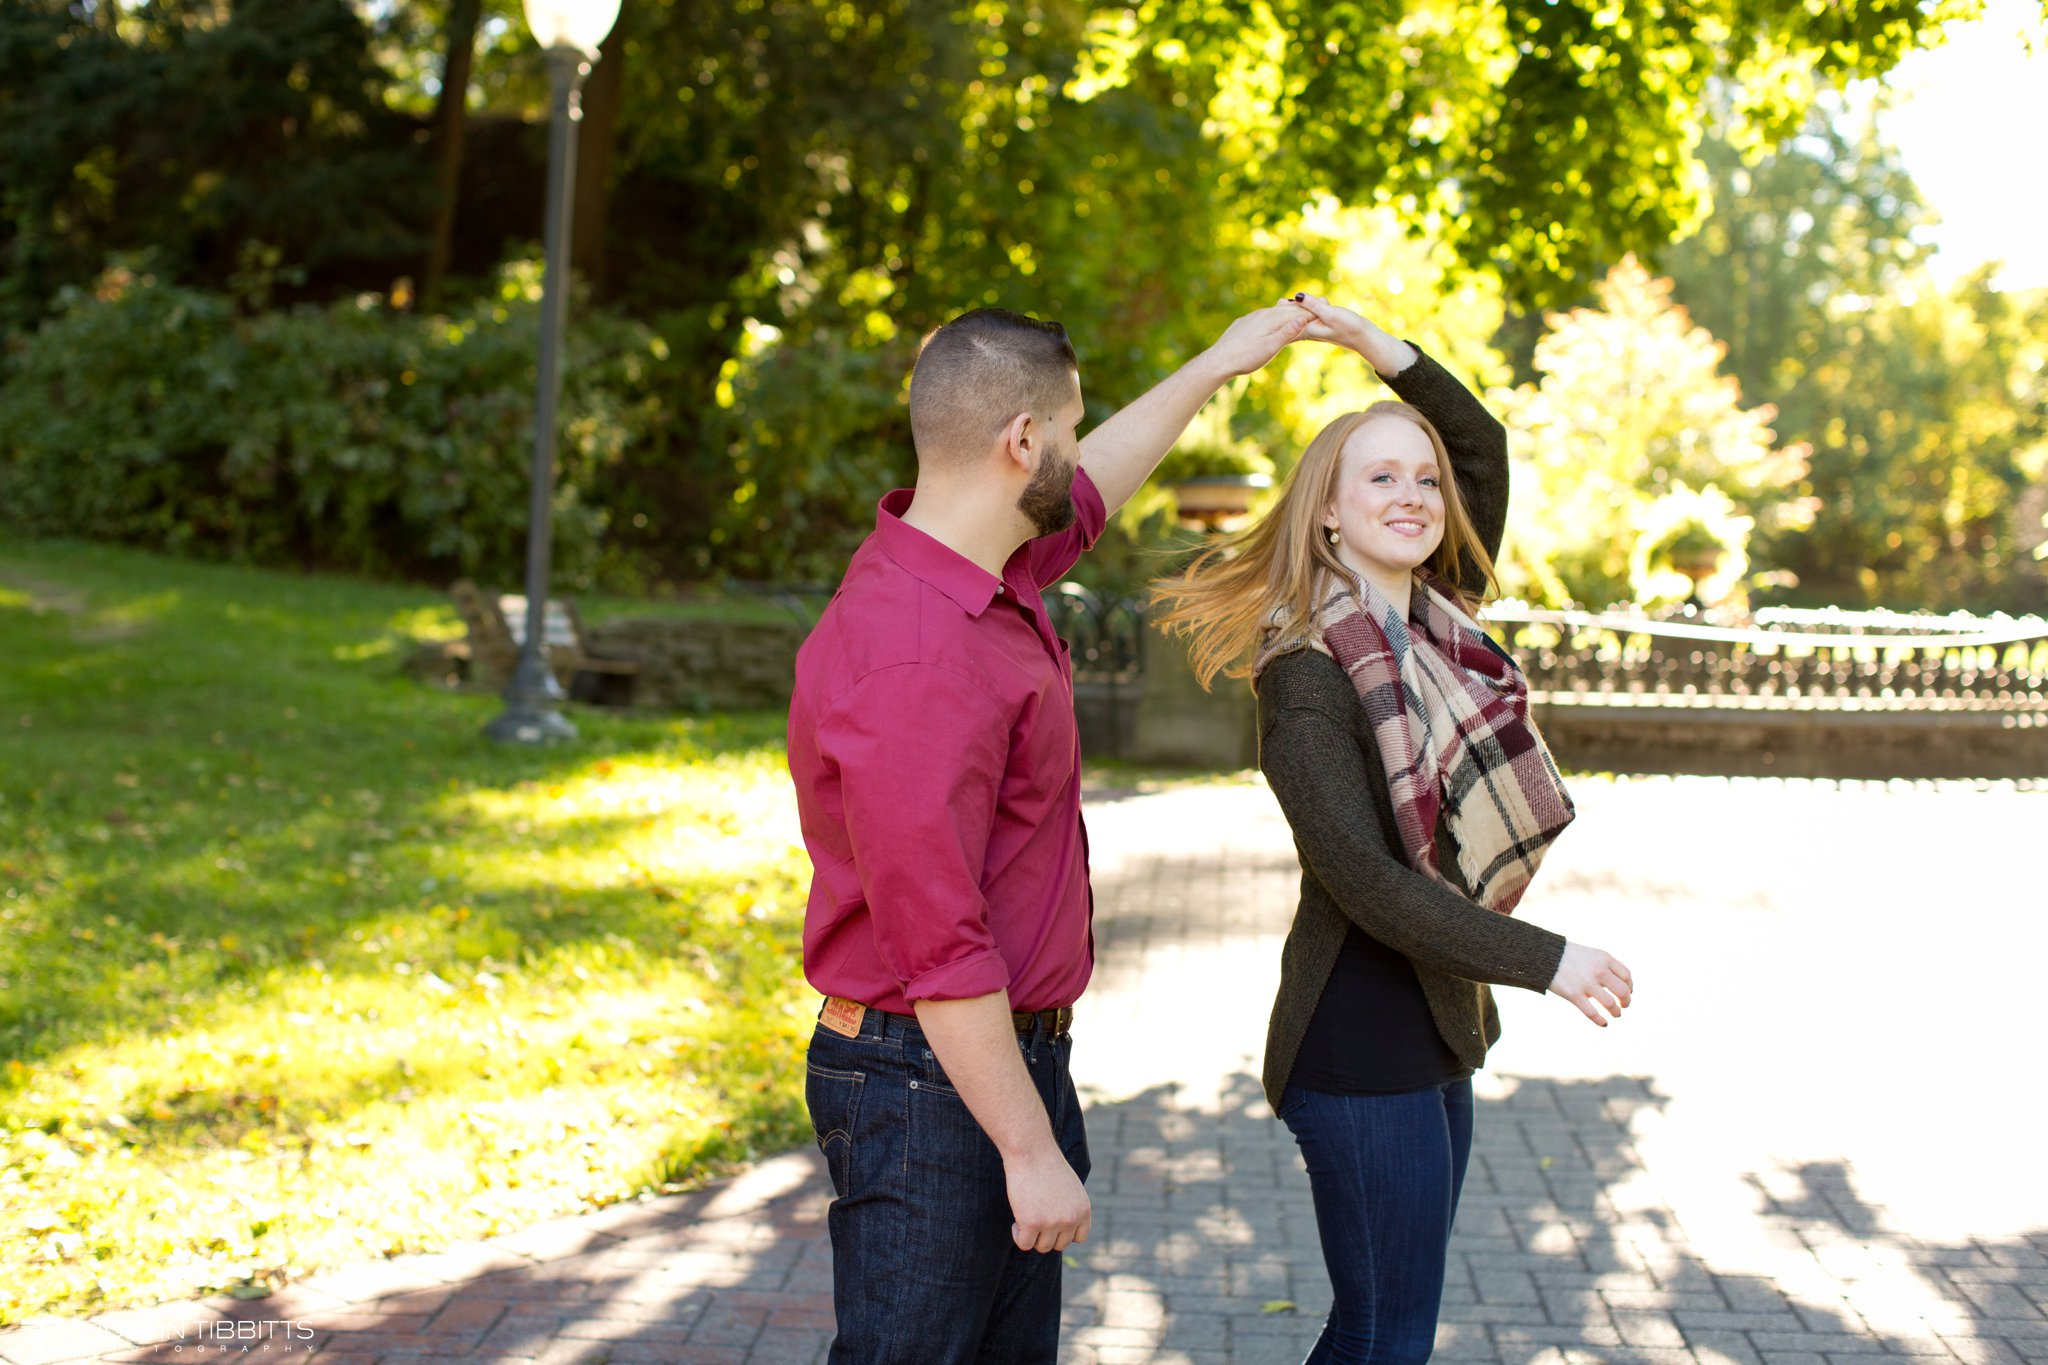 congress-park-saratoga-springs-engagement-photos-with-lauren-and-nick_0007